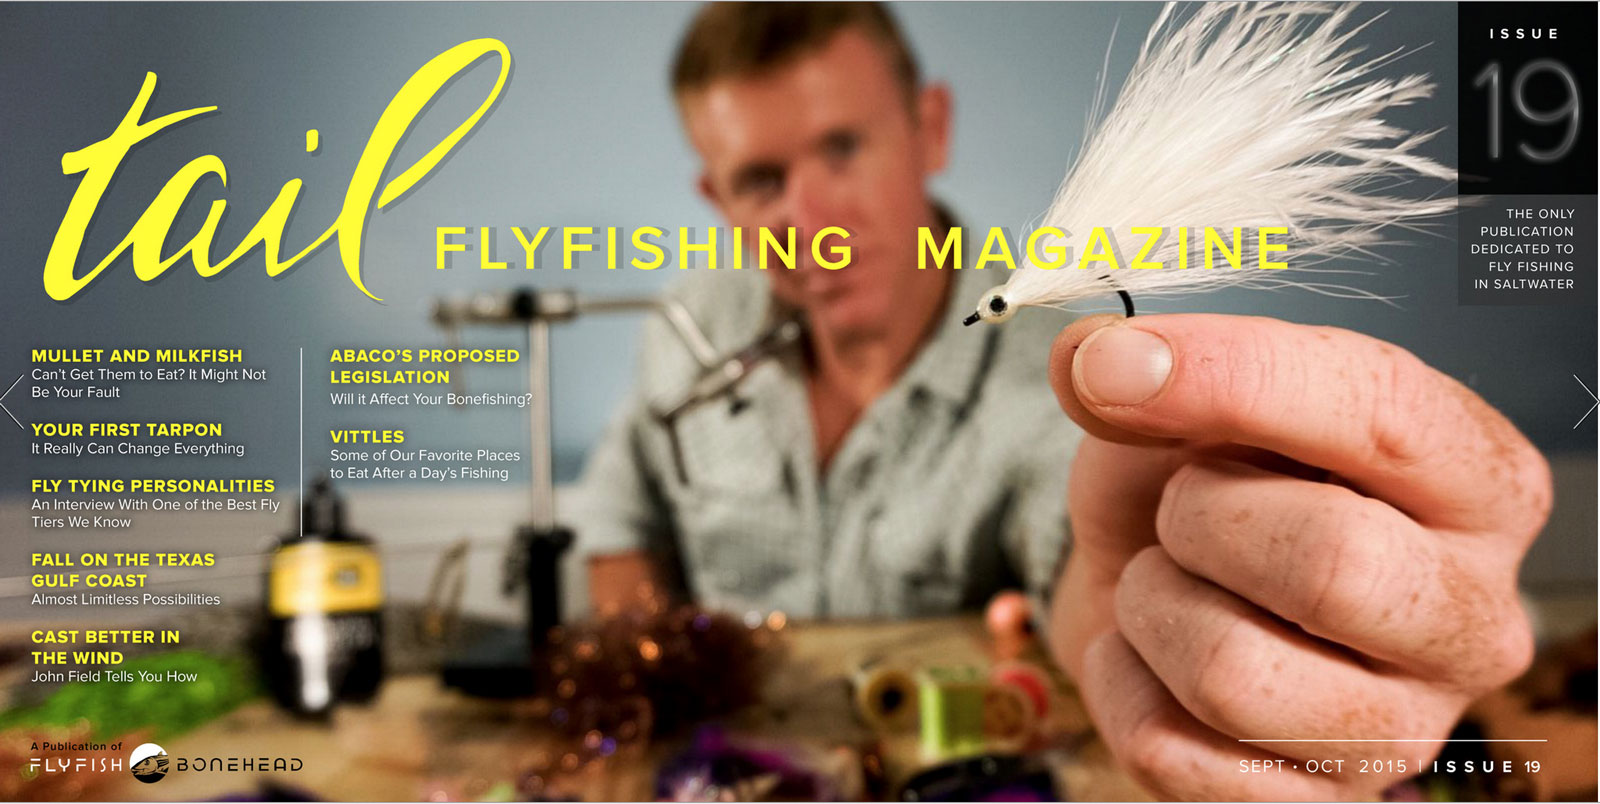 tail fly fishing magazine : flyfishbonehead, Fishing Reels